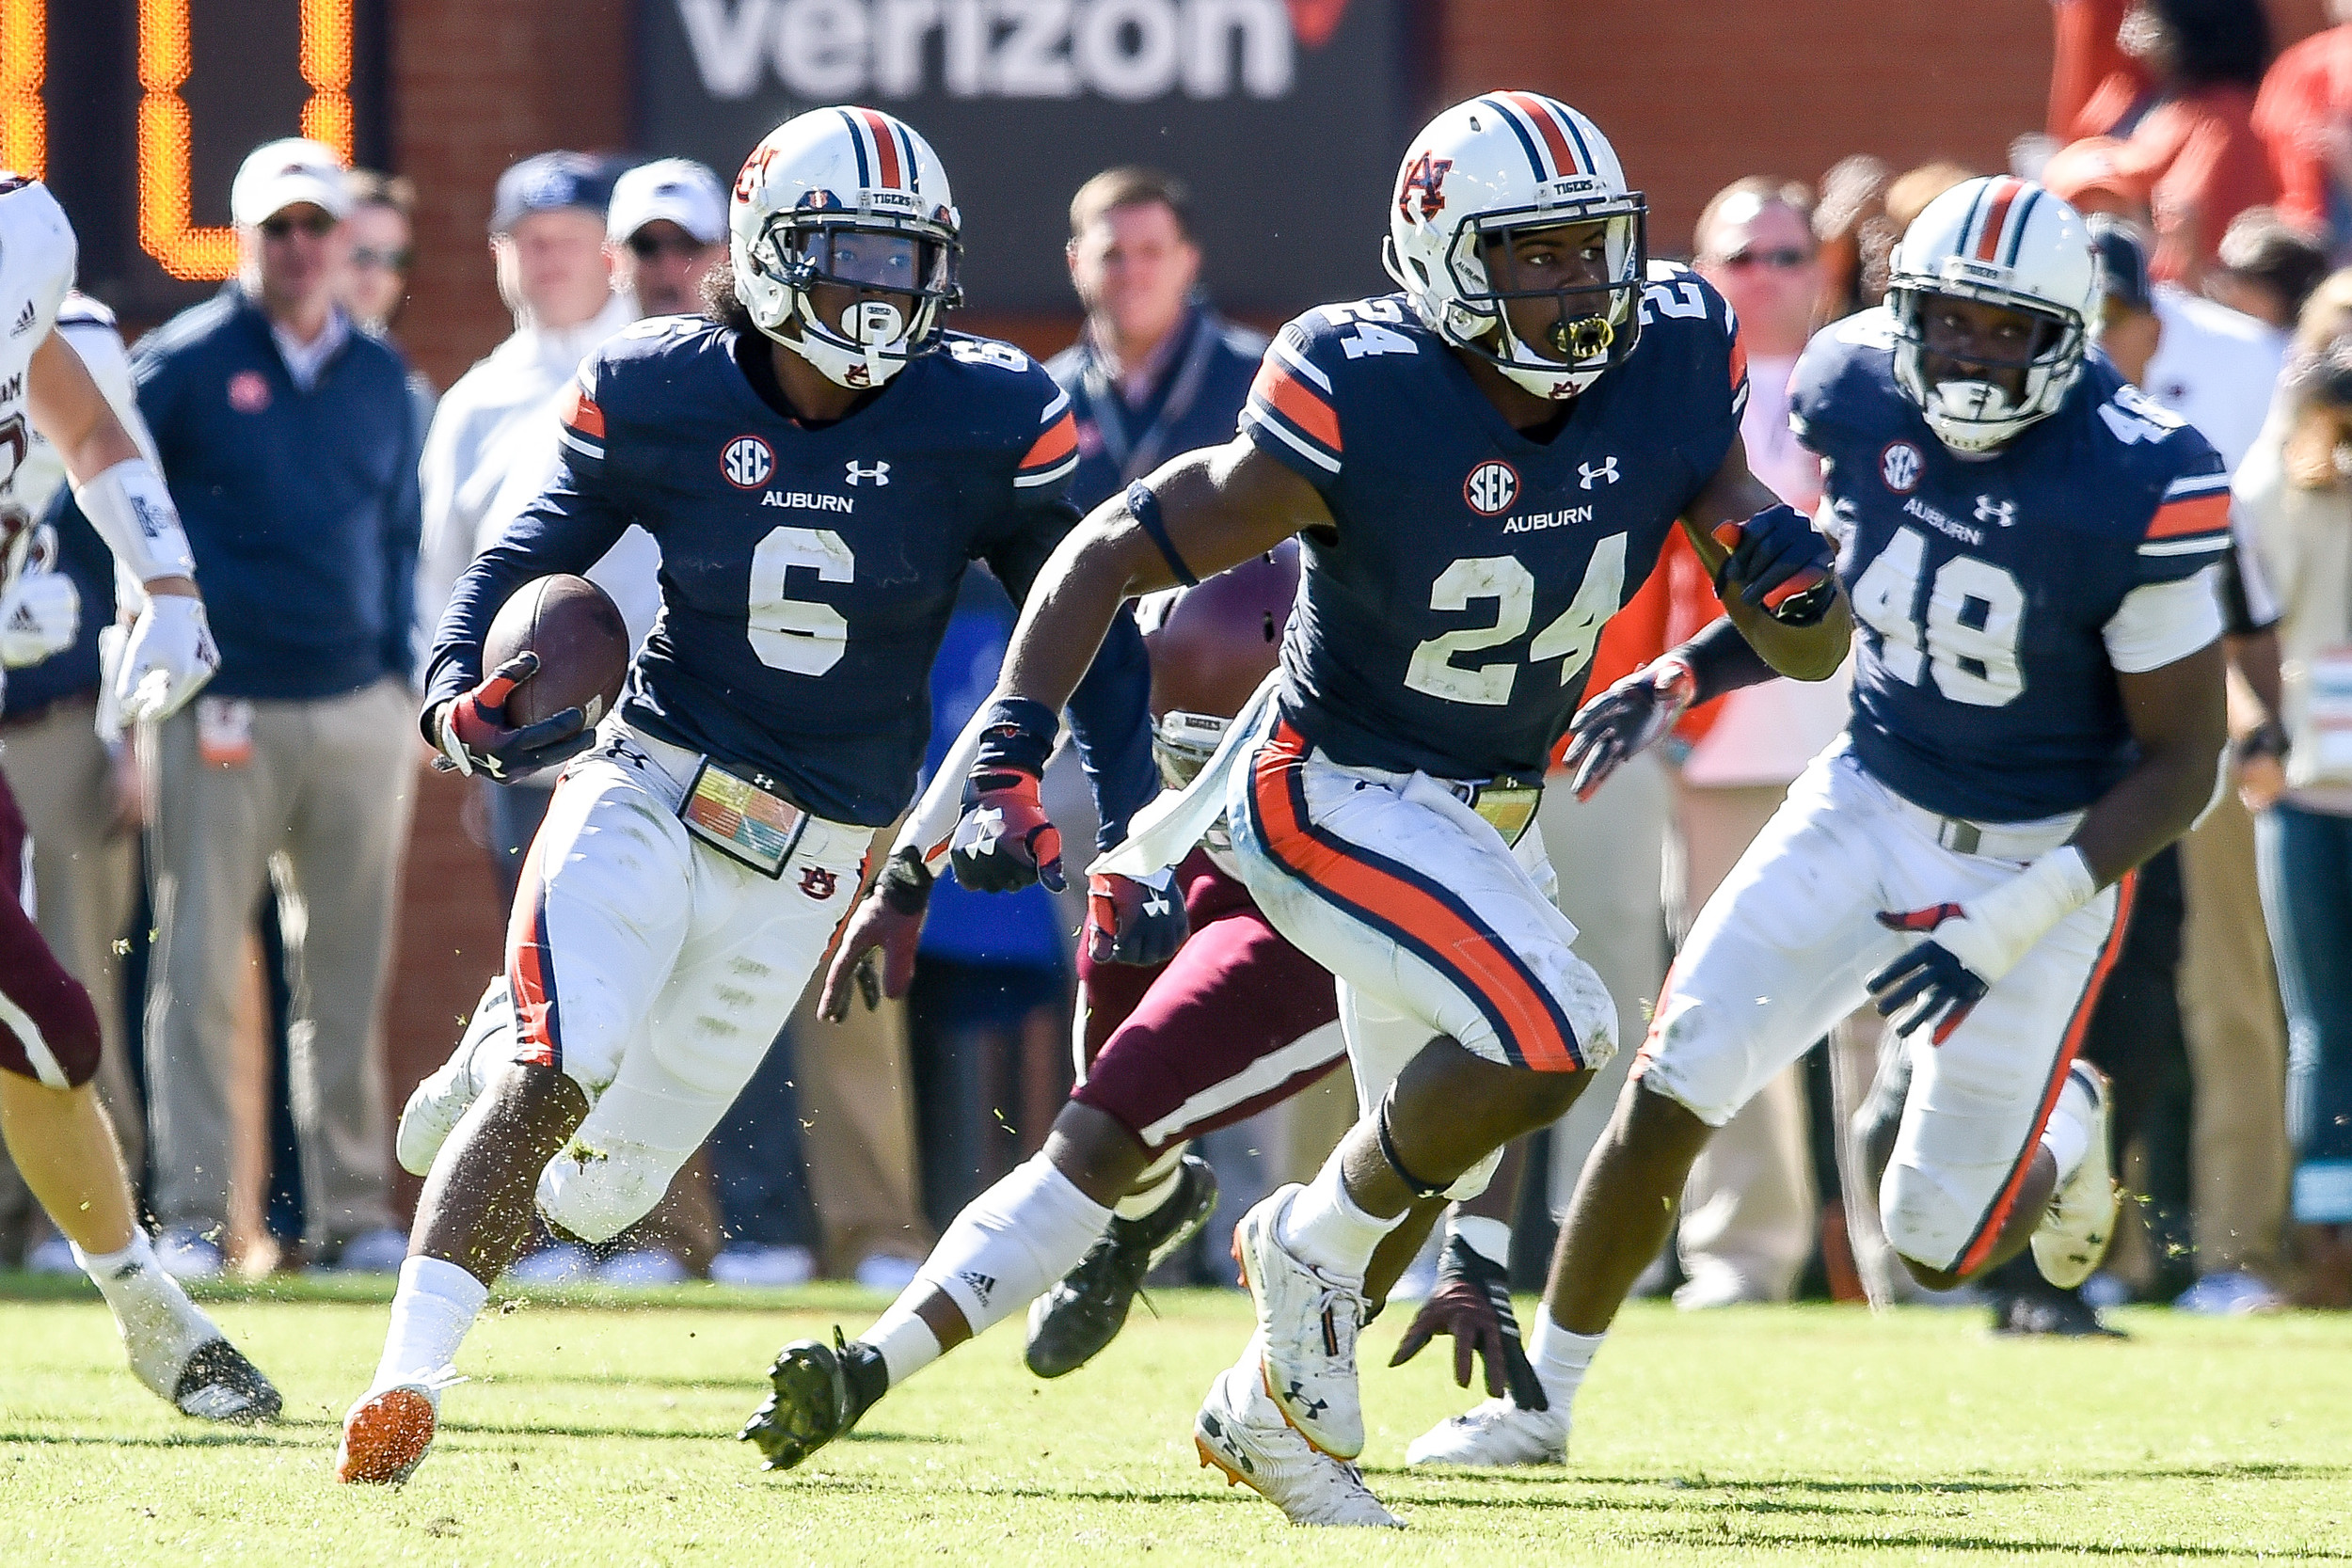 Auburn Tigers defensive back Christian Tutt (6) returns a punt during the second half of an NCAA football game against the Texas A&M Aggies Saturday, November 3, 2018, at Jordan-Hare Stadium in Auburn, Ala. (Photo by Jeff Johnsey)